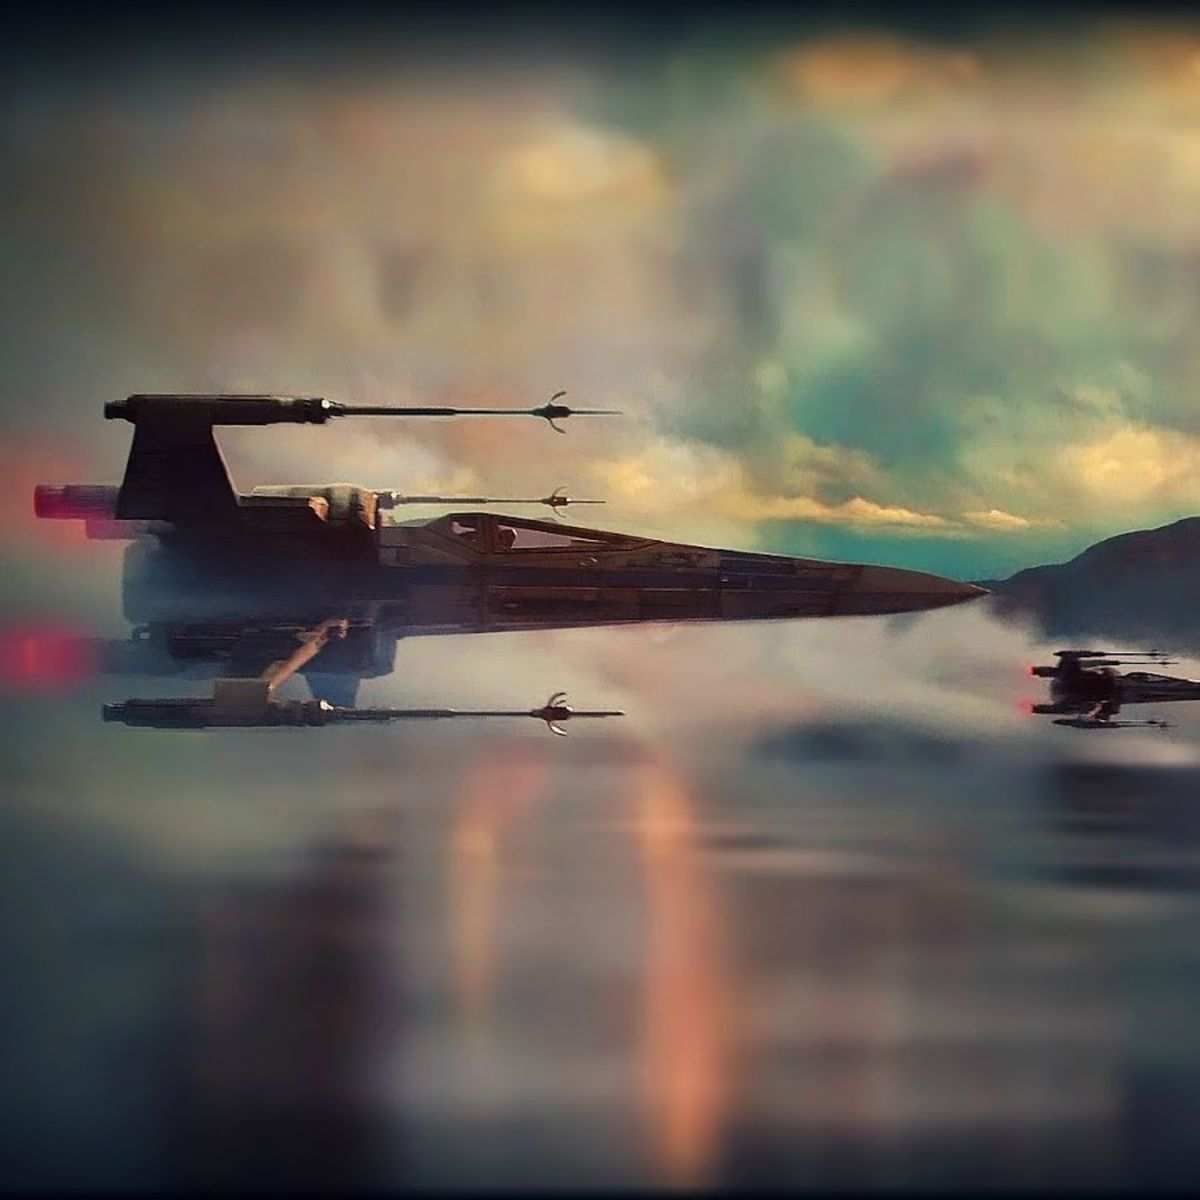 star_wars_x-wing.jpg